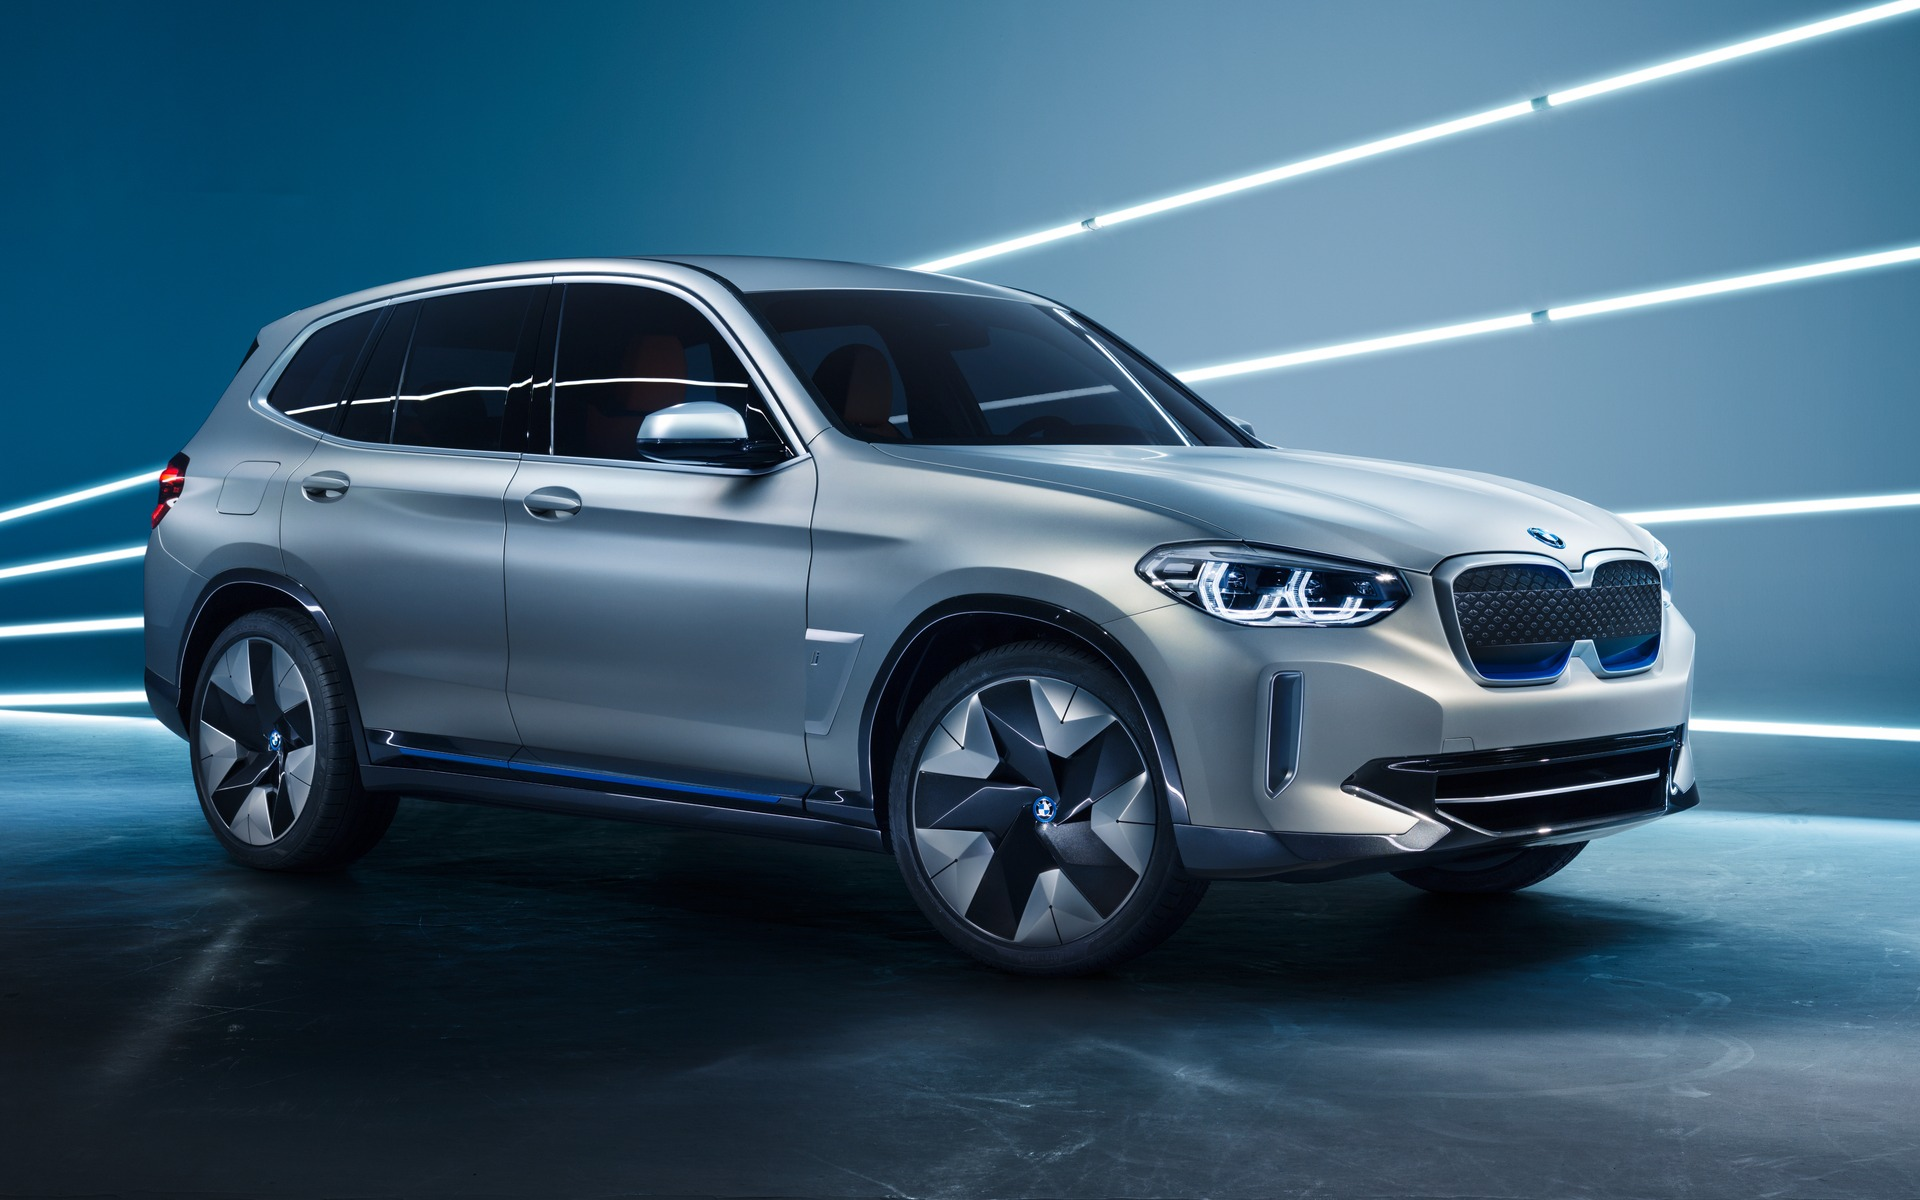 Bmw Concept Ix3 A Fully Electric X3 The Car Guide